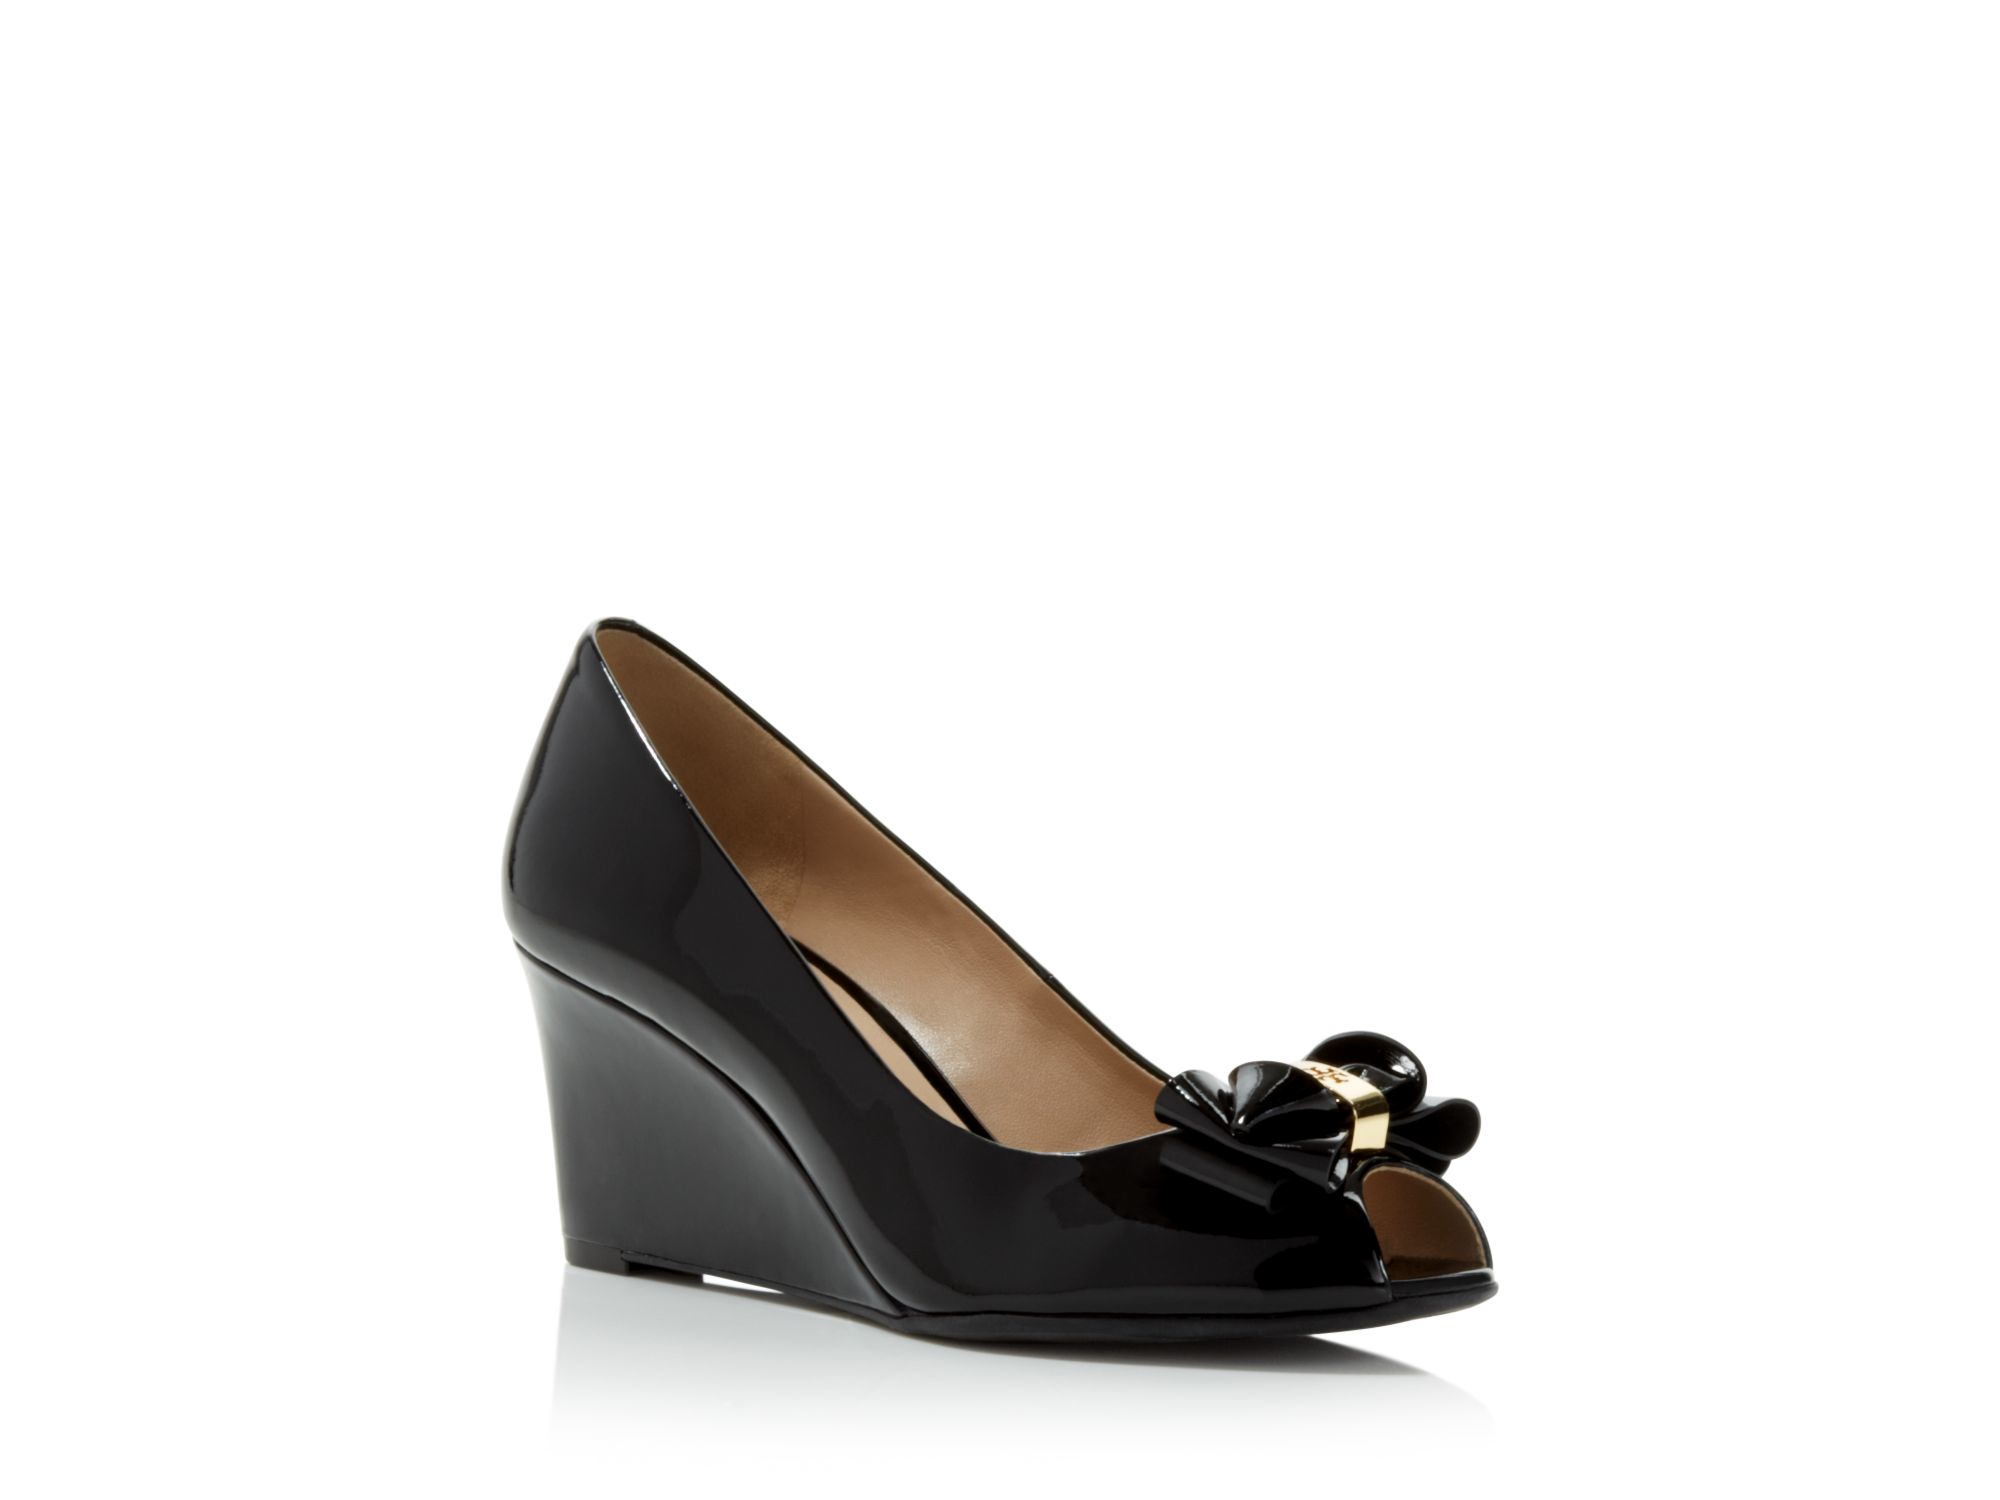 Tory burch Stacked Bow Peep Toe Wedge Pumps in Black  Lyst